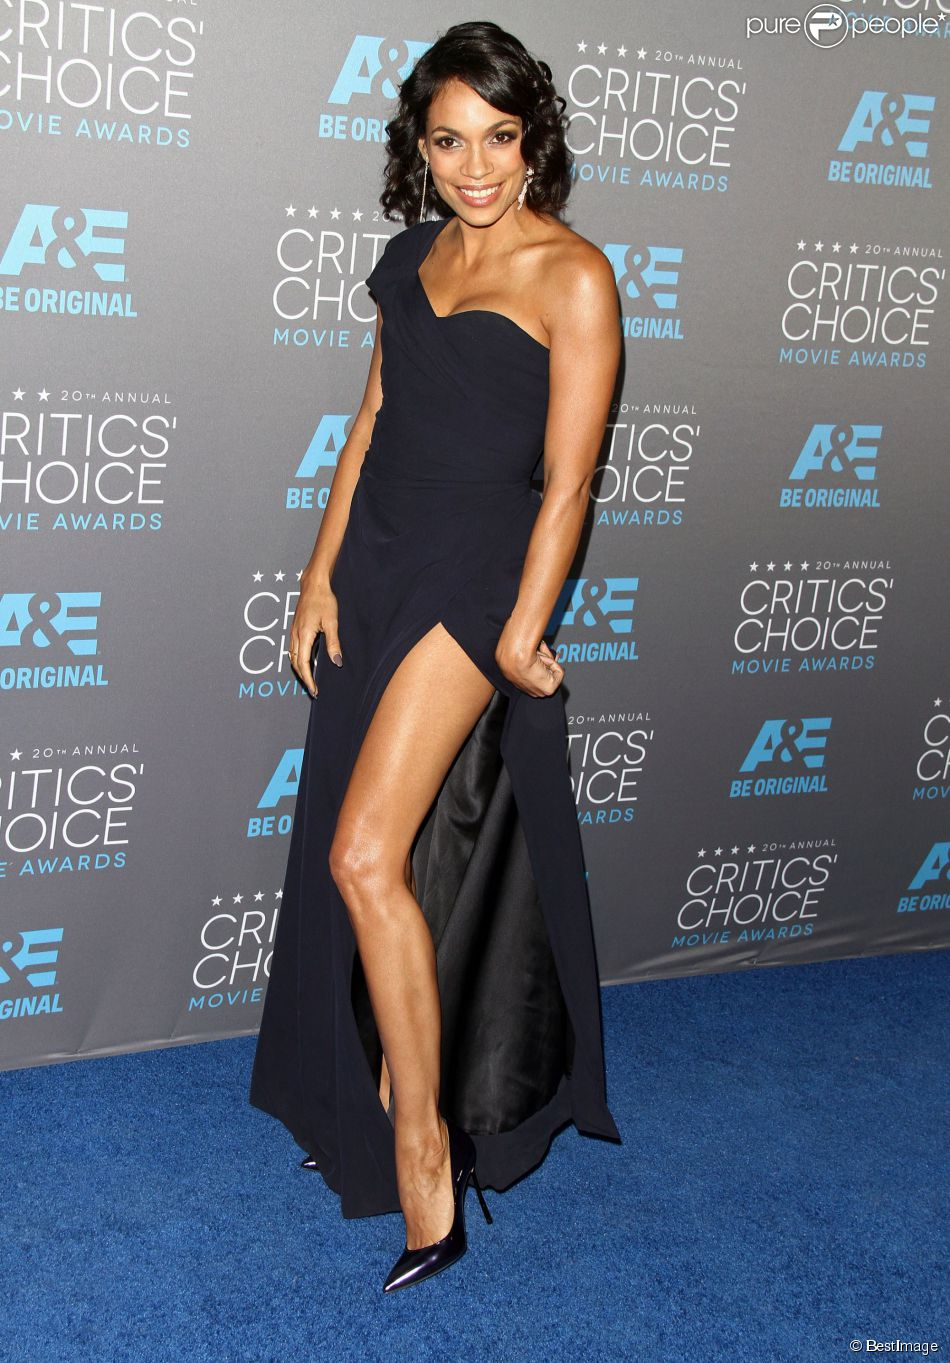 rosario-dawson-vivienne-westwood-2015-critics-choice-movie-awards